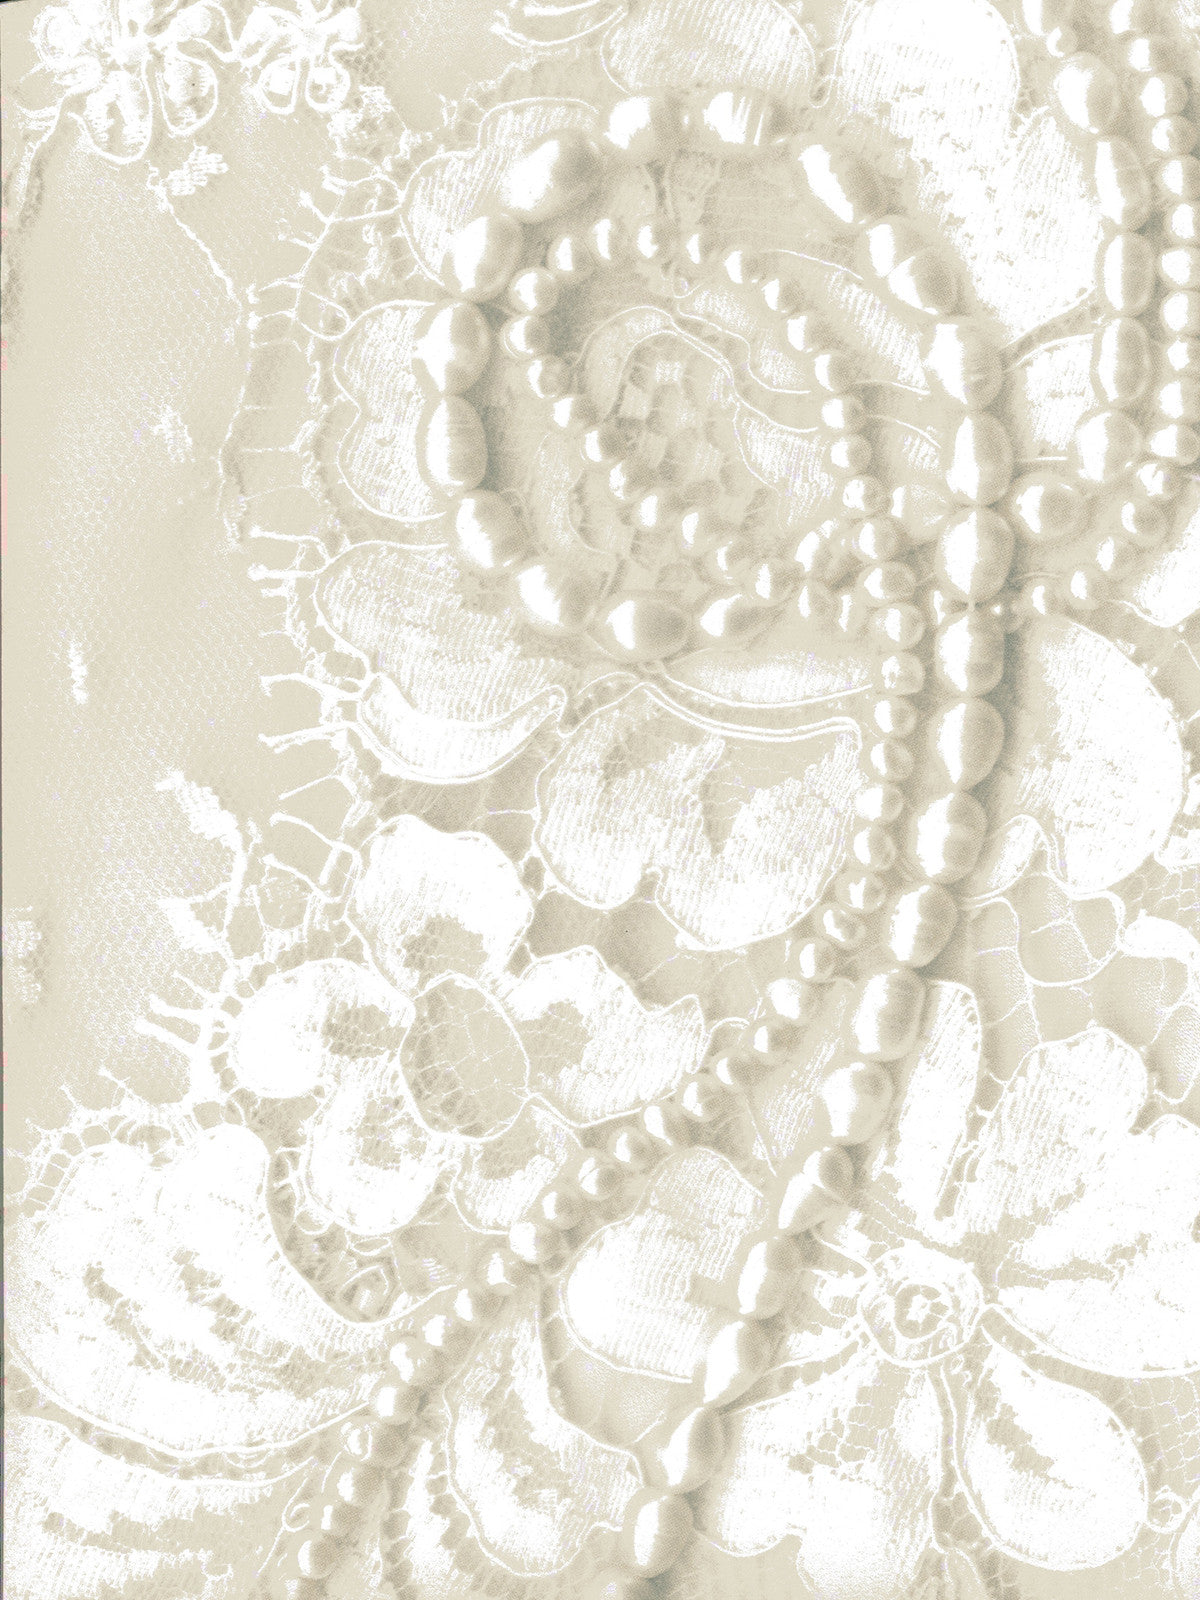 Pearls and Lace Photography Background / 7239